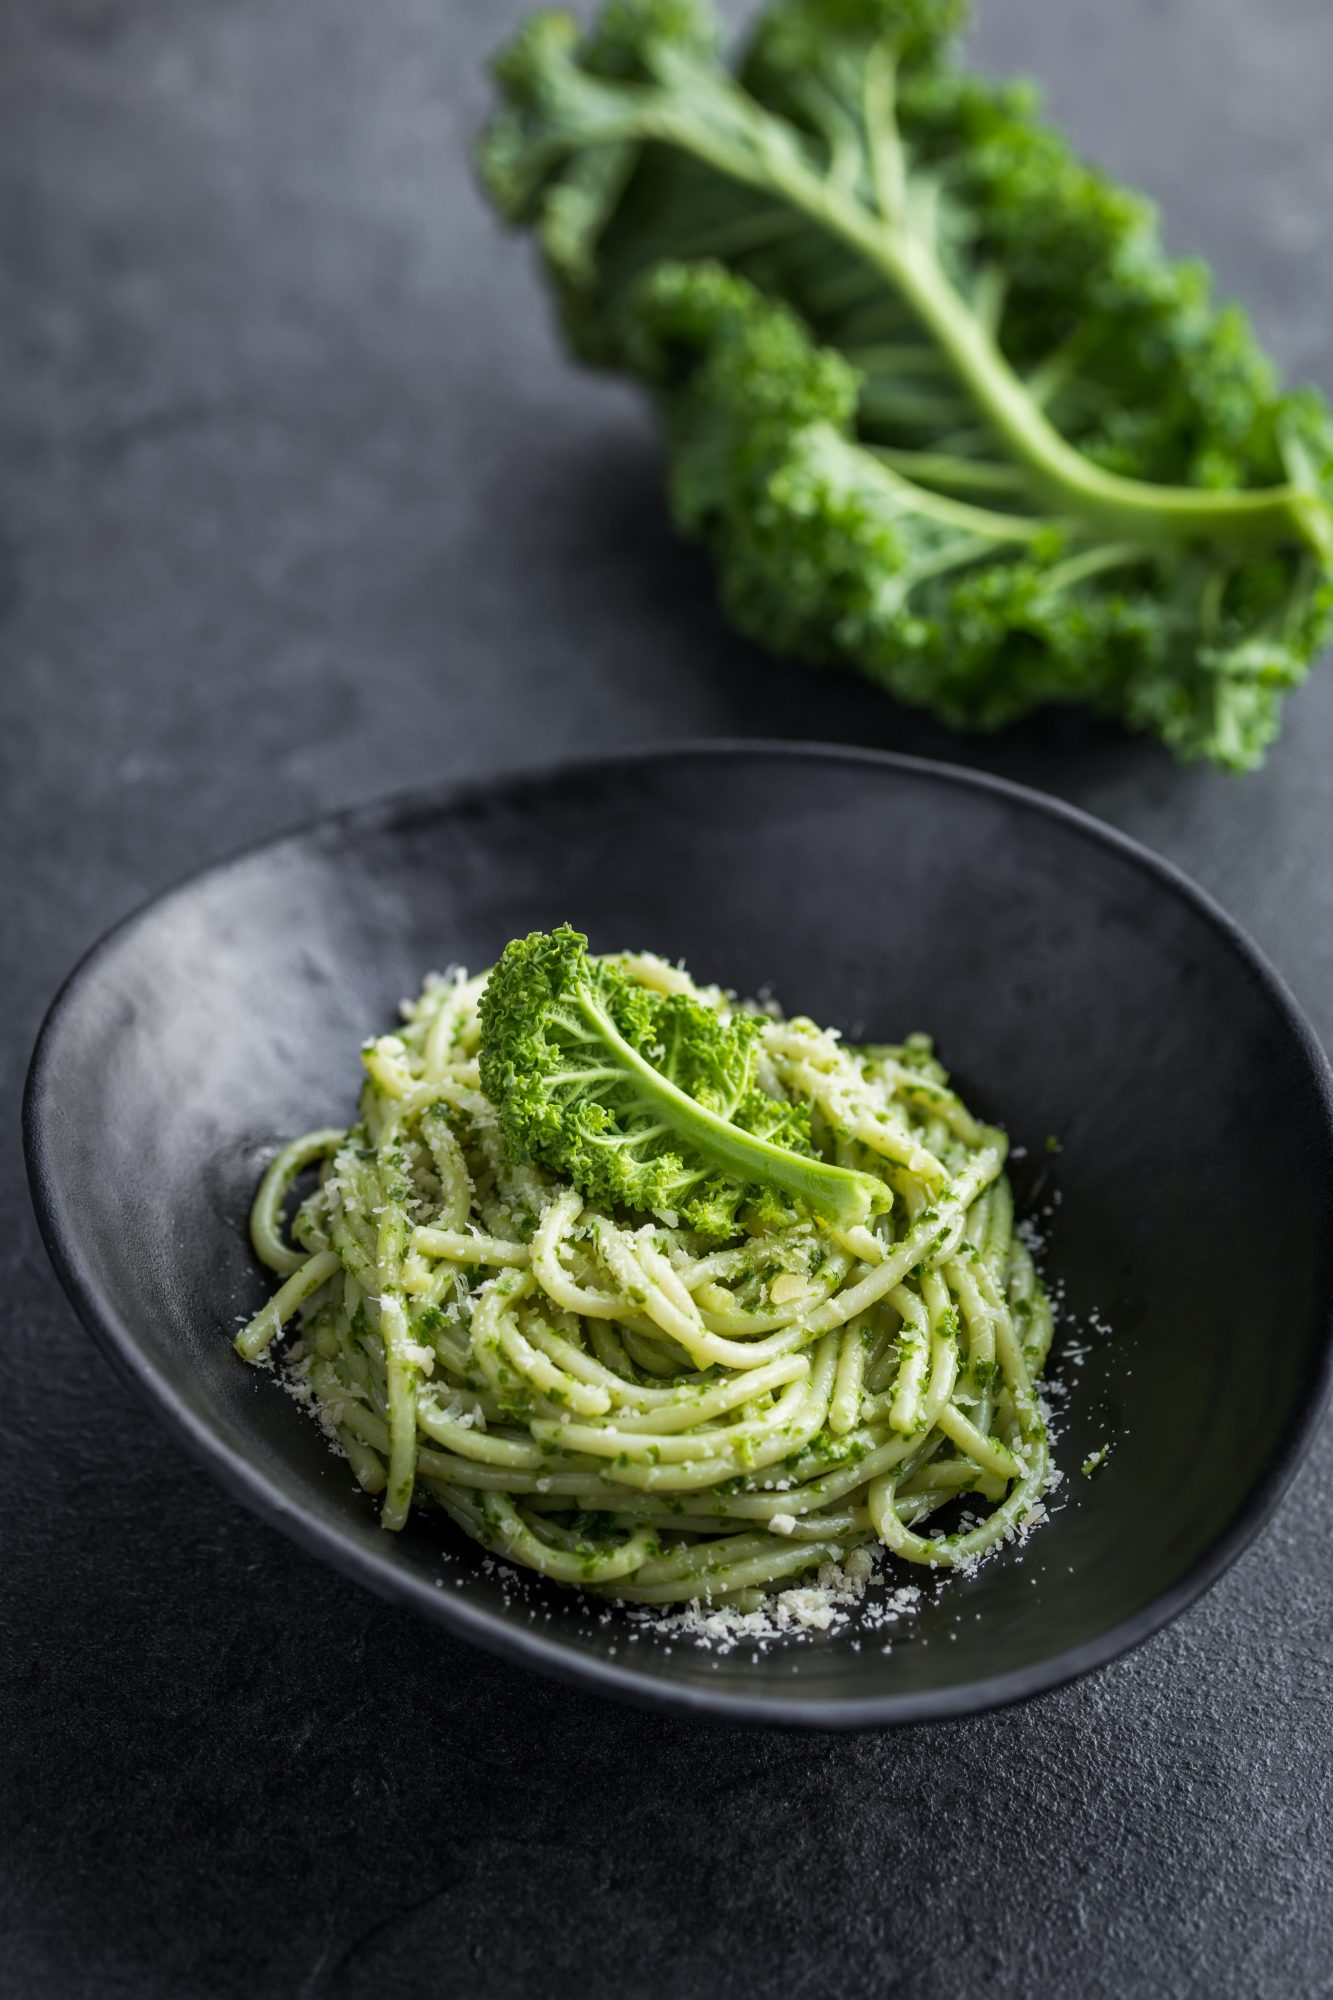 Image result for This Decadent Pasta Sauce Is Actually Packed With a Full Serving of Greens